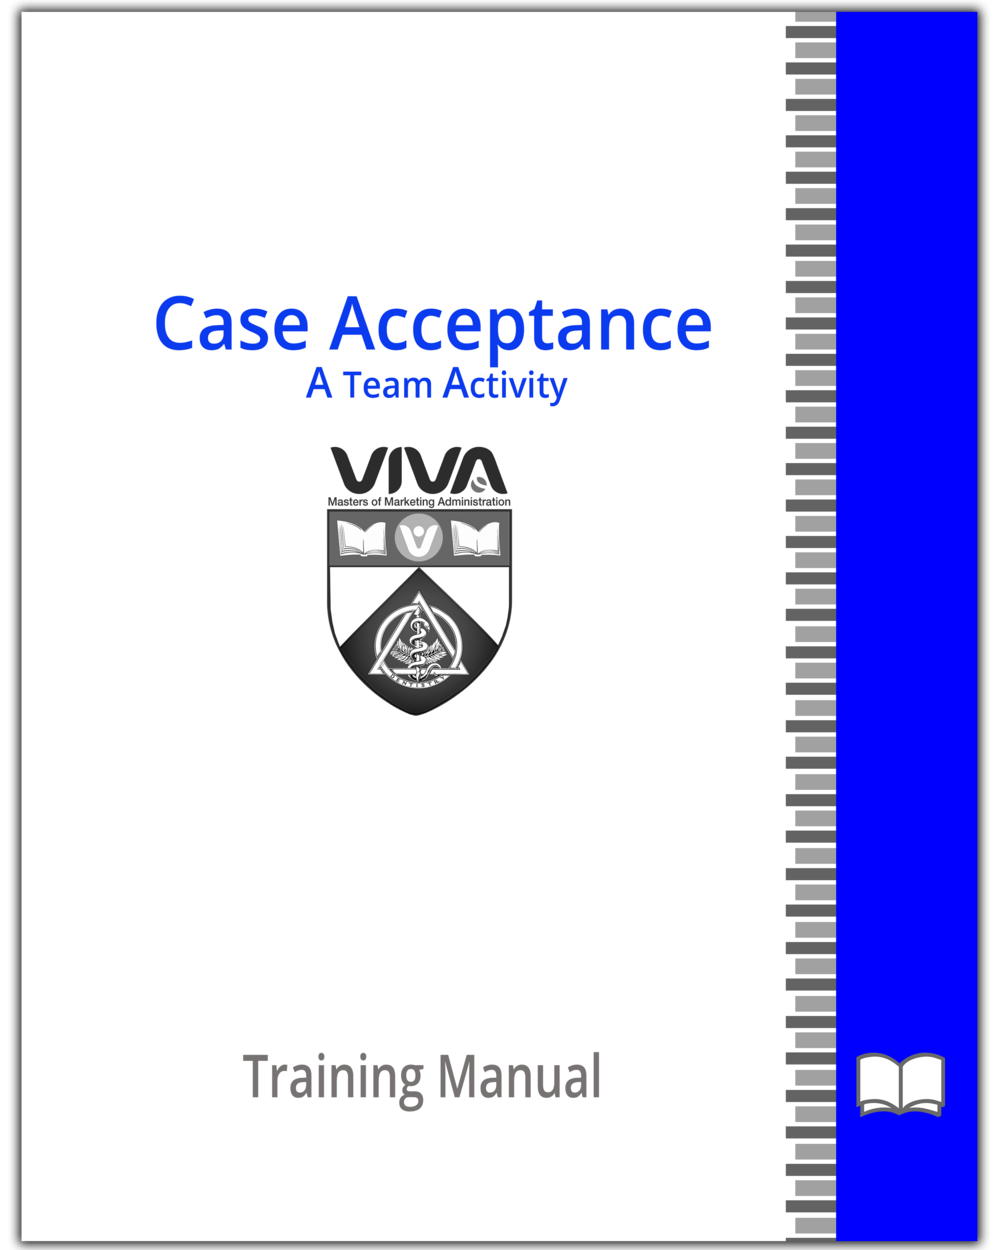 Case Acceptance Shadowed cover.png